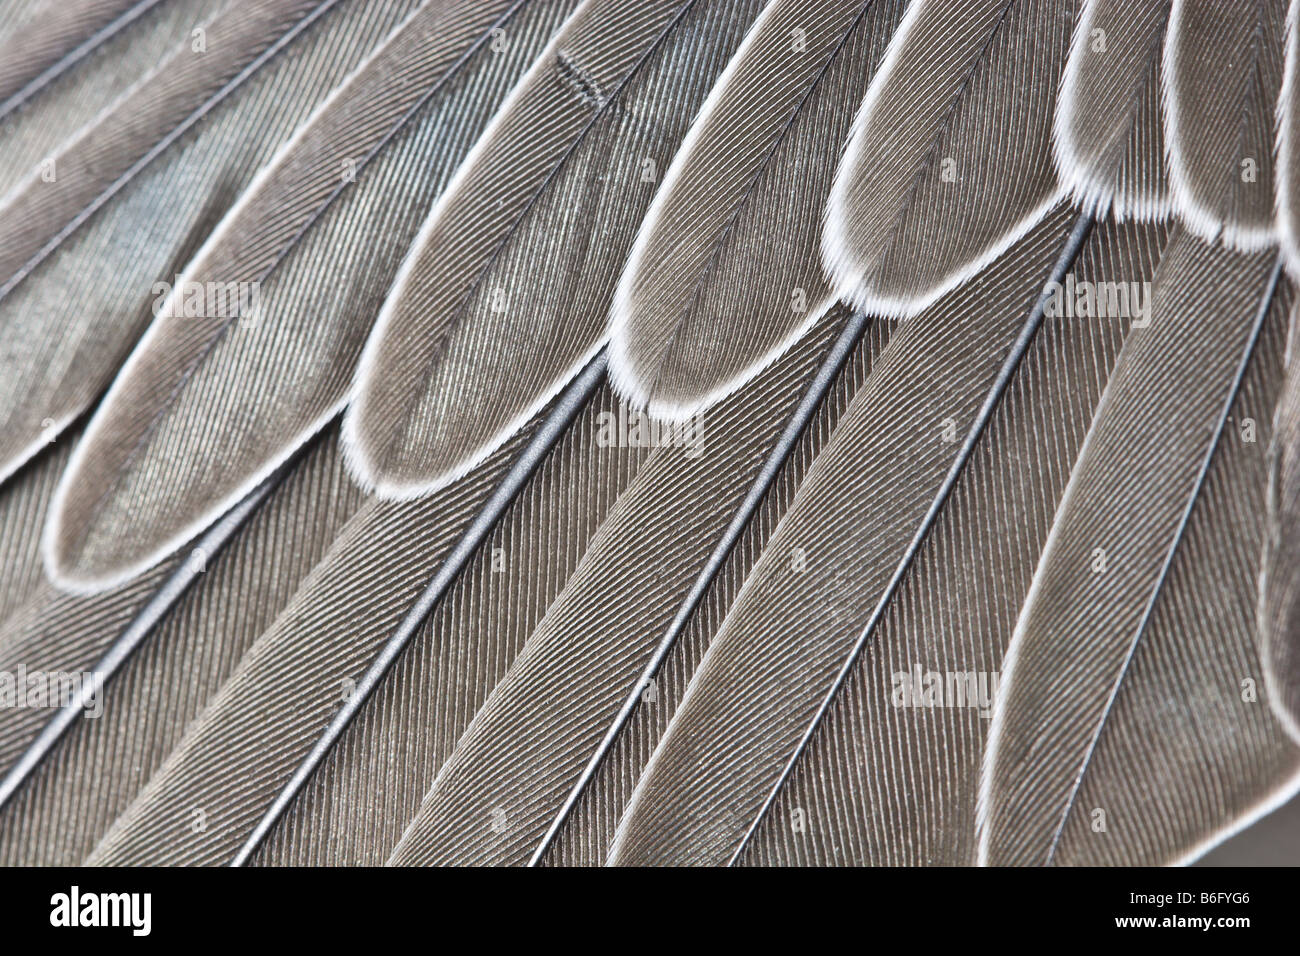 Feathers in a wing of the martin - Stock Image